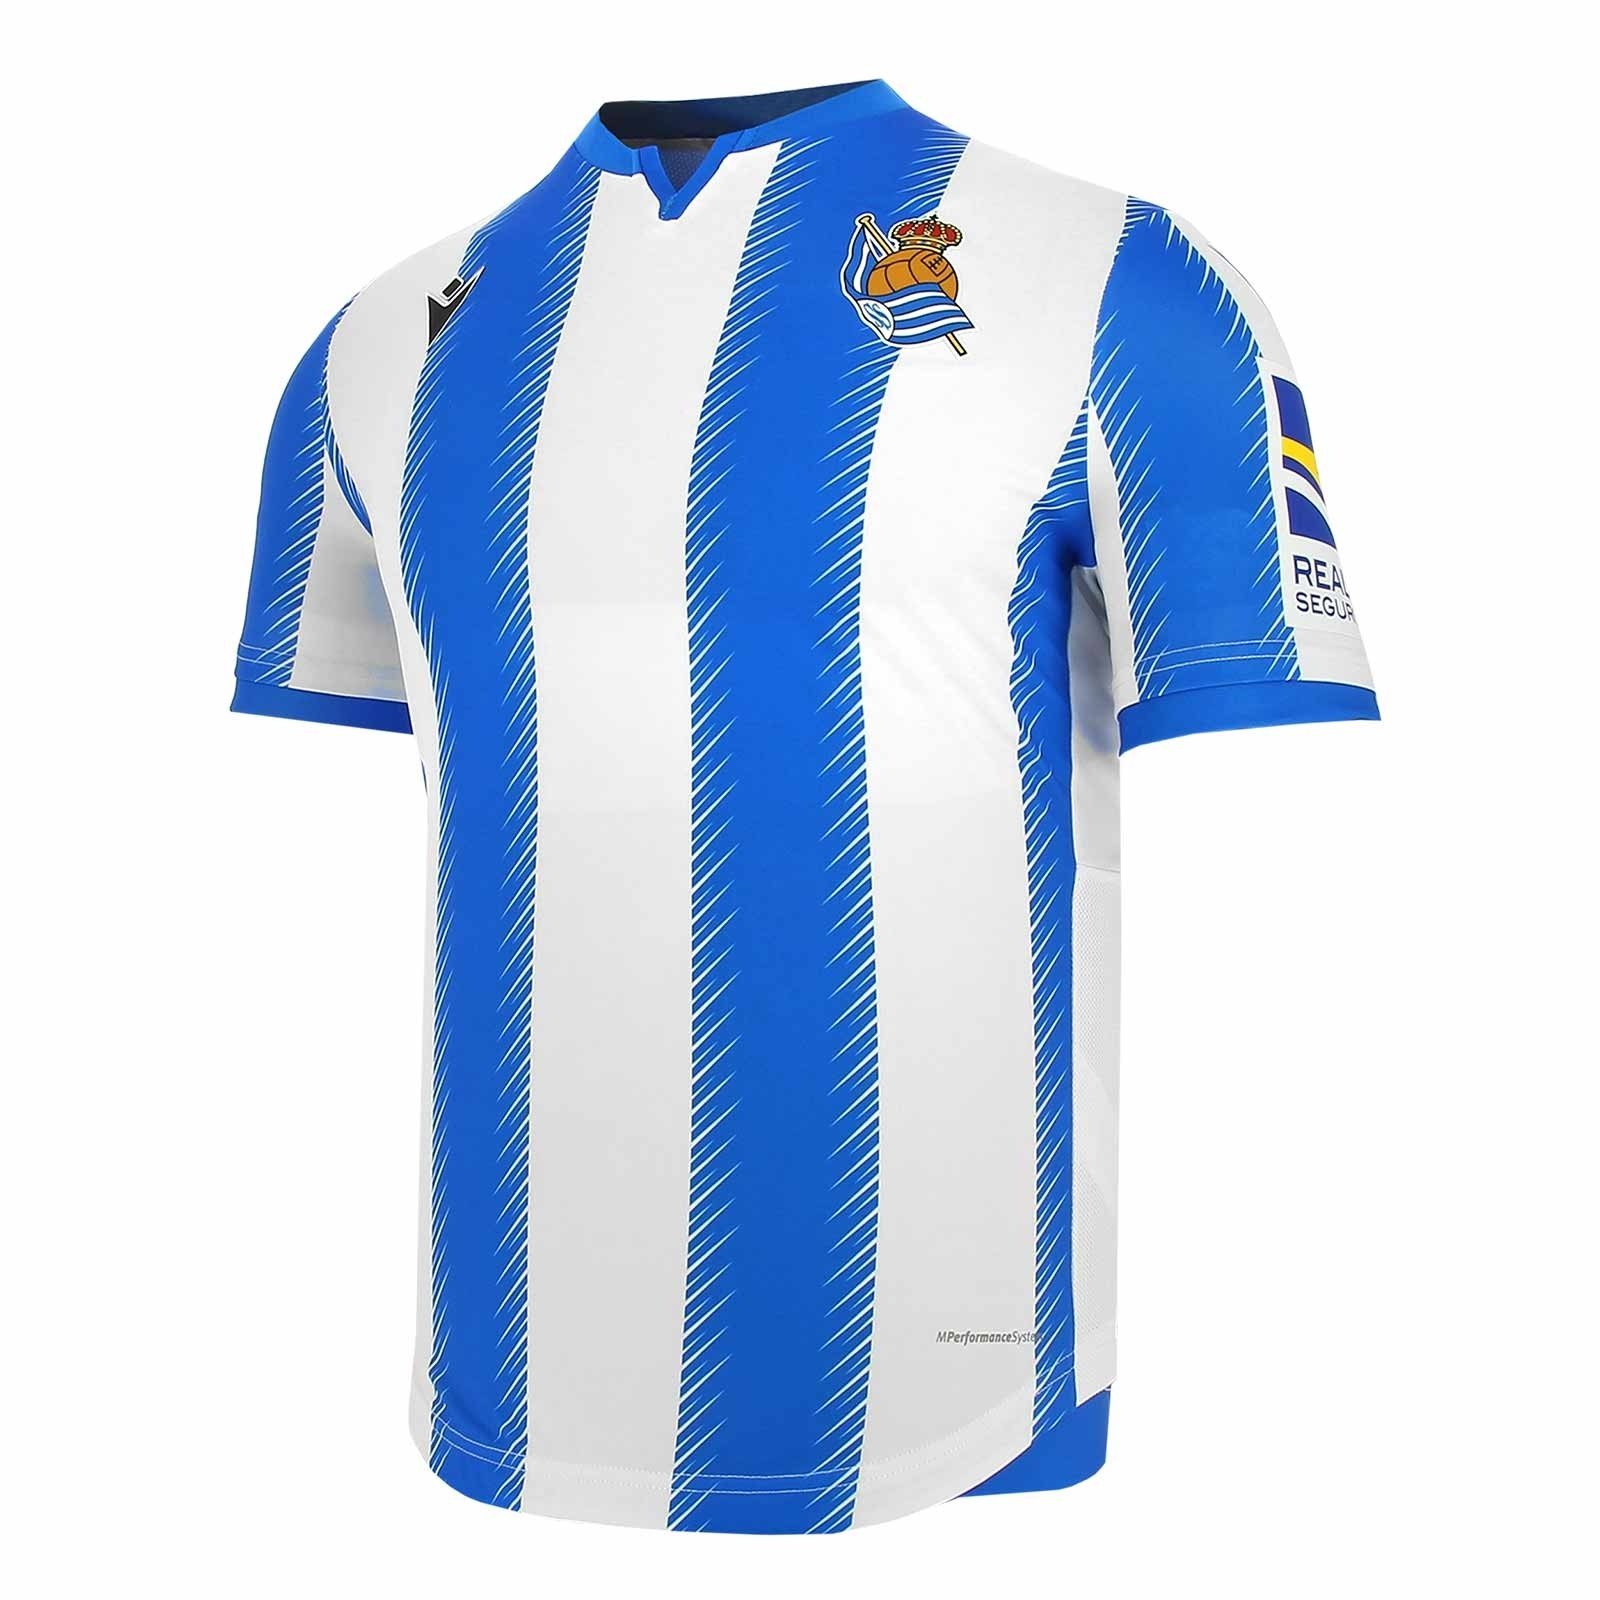 Maillot foot Real Sociedad Domicile 2019/2020 Pas Cher